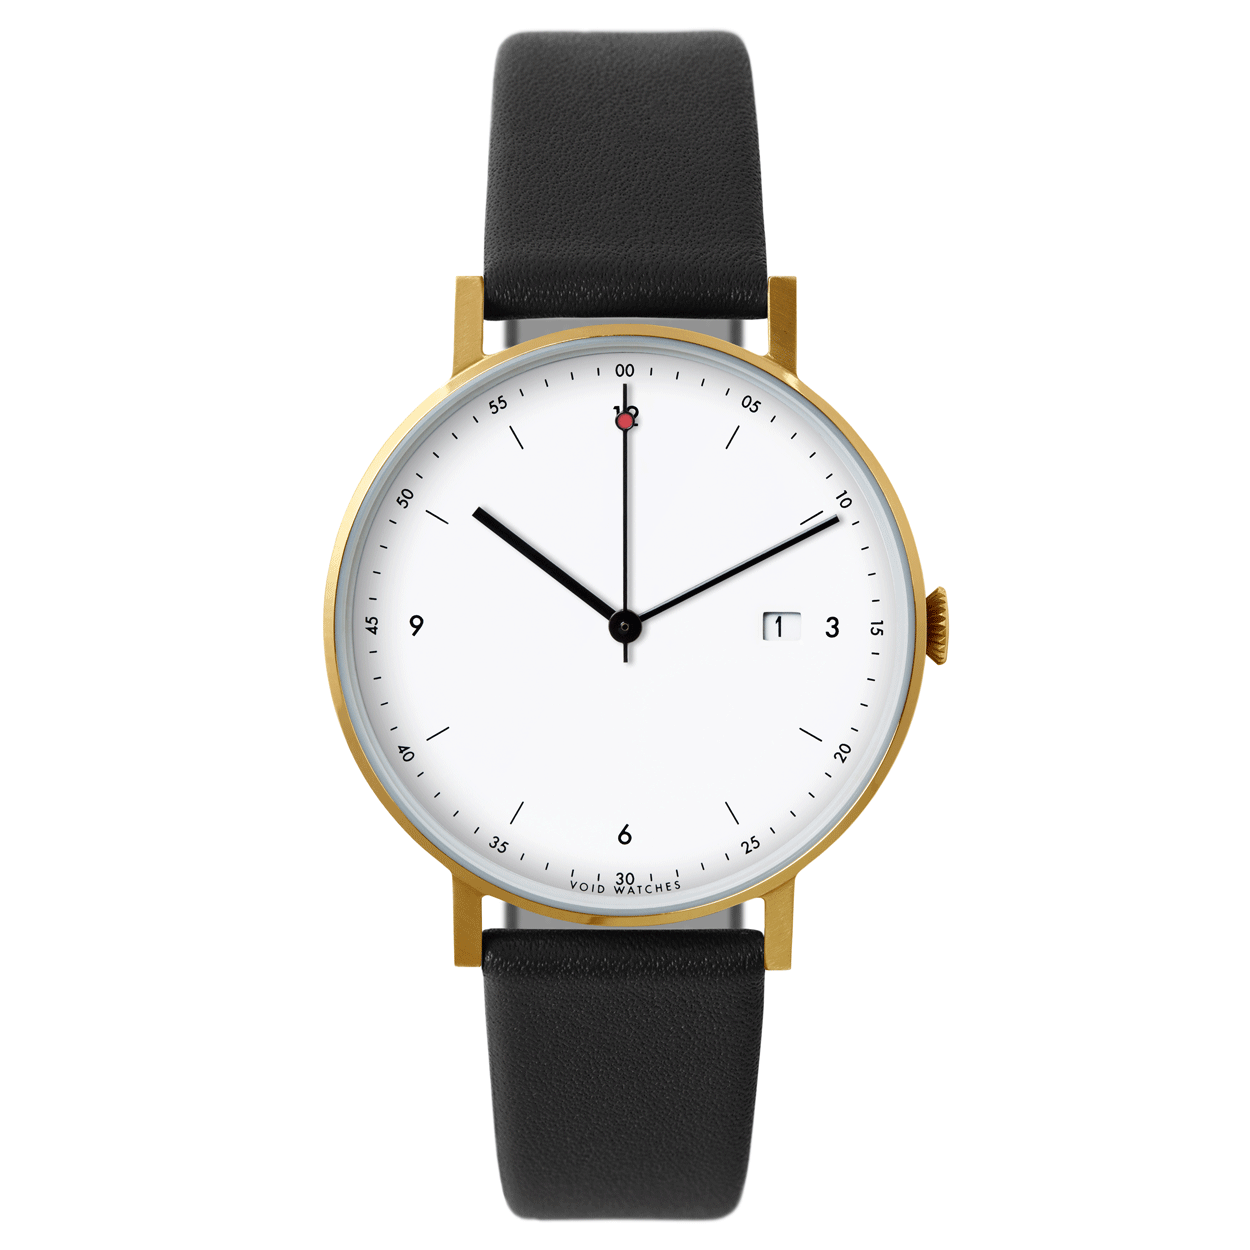 Void's thinnest timepiece to date is now available in a classic gold/black colour combination.     #blackandgold #luxurywatches #Swefishdesign